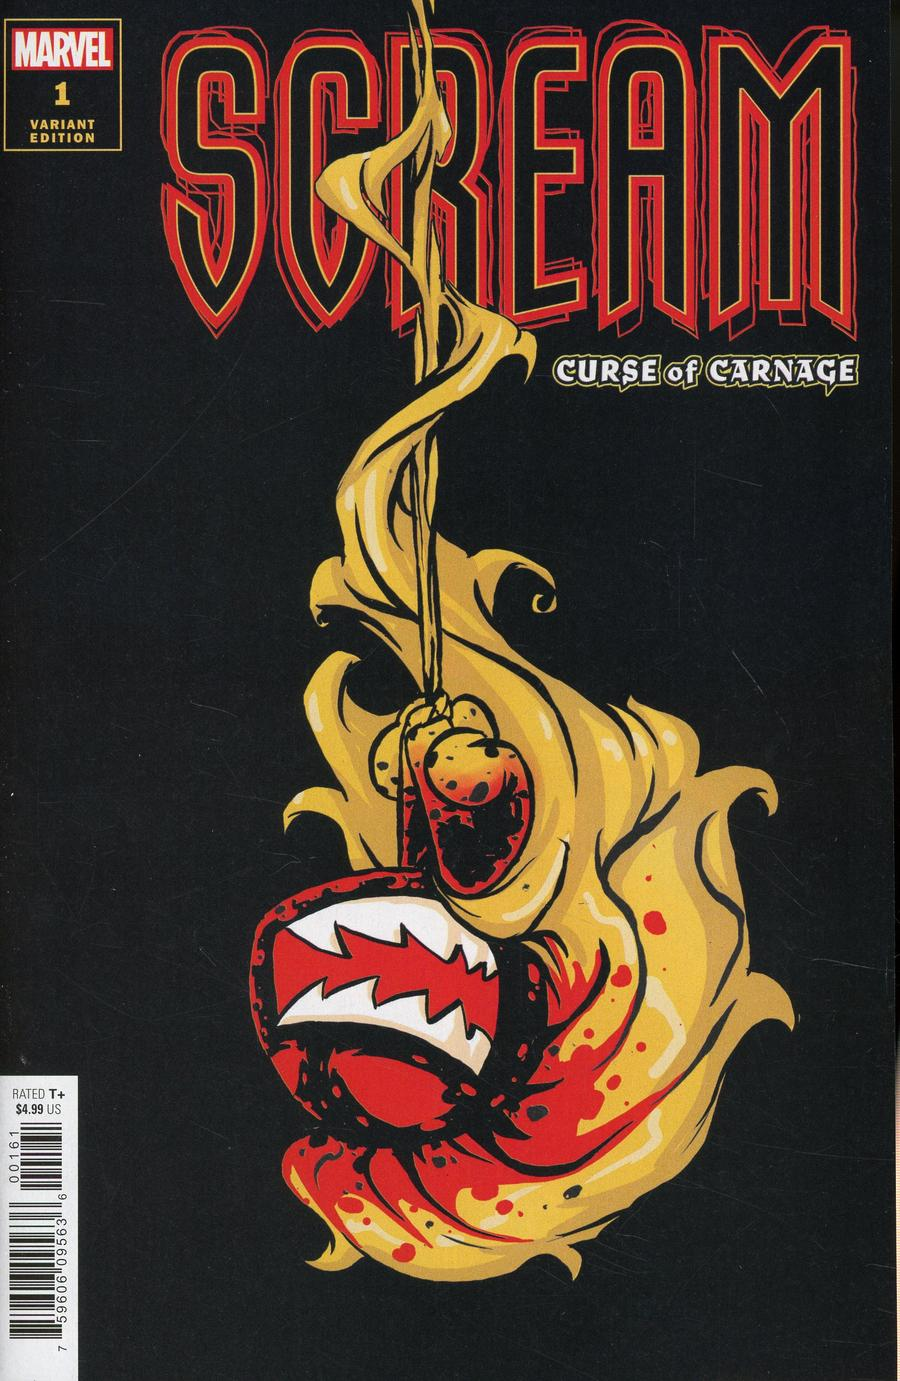 Scream Curse Of Carnage #1 Cover C Variant Skottie Young Cover (Absolute Carnage Tie-In)